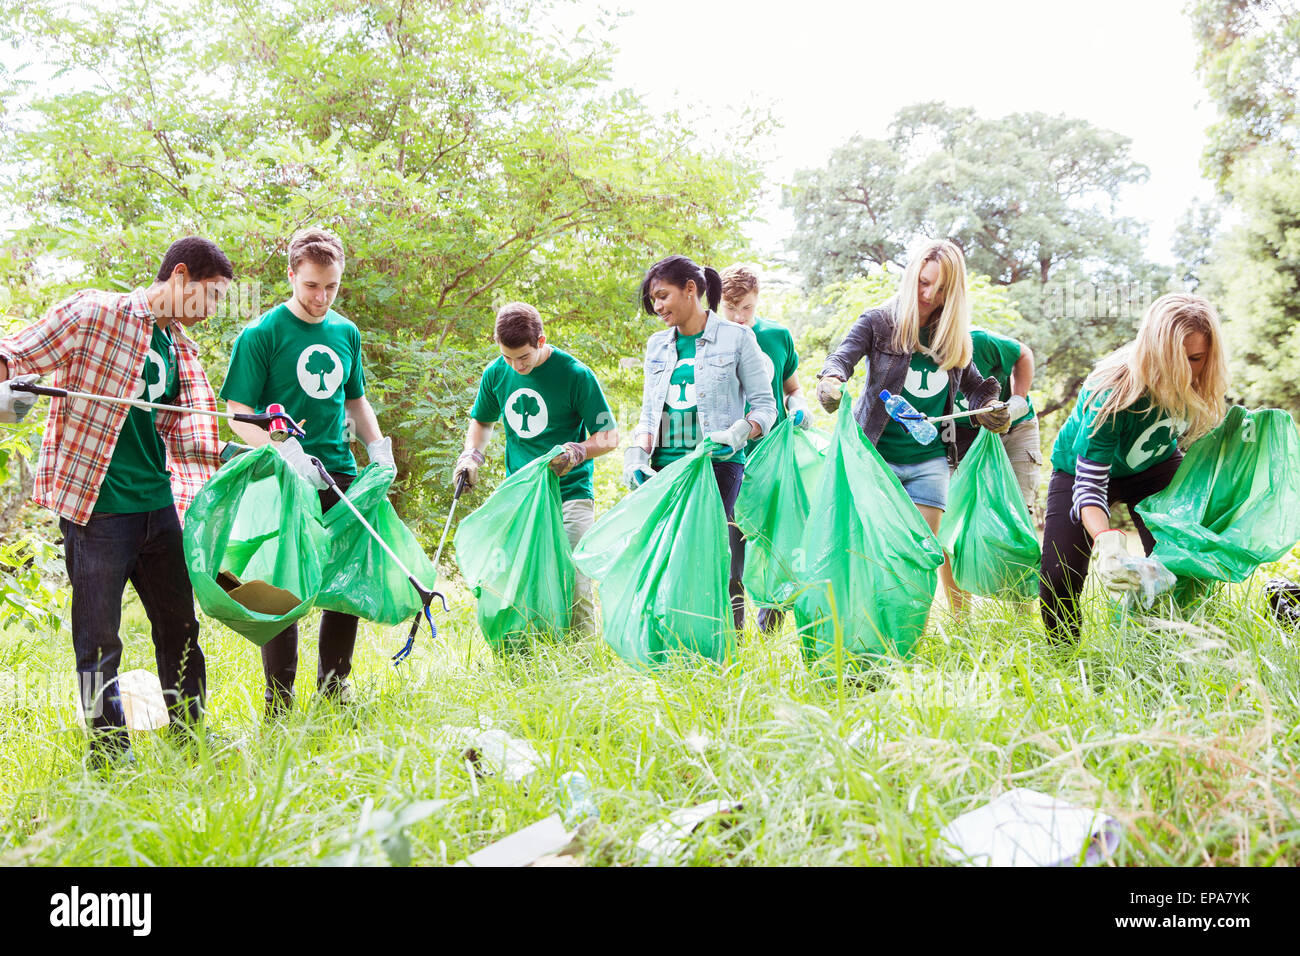 Elementary S Picking Up Garbage In The Park Stock Image